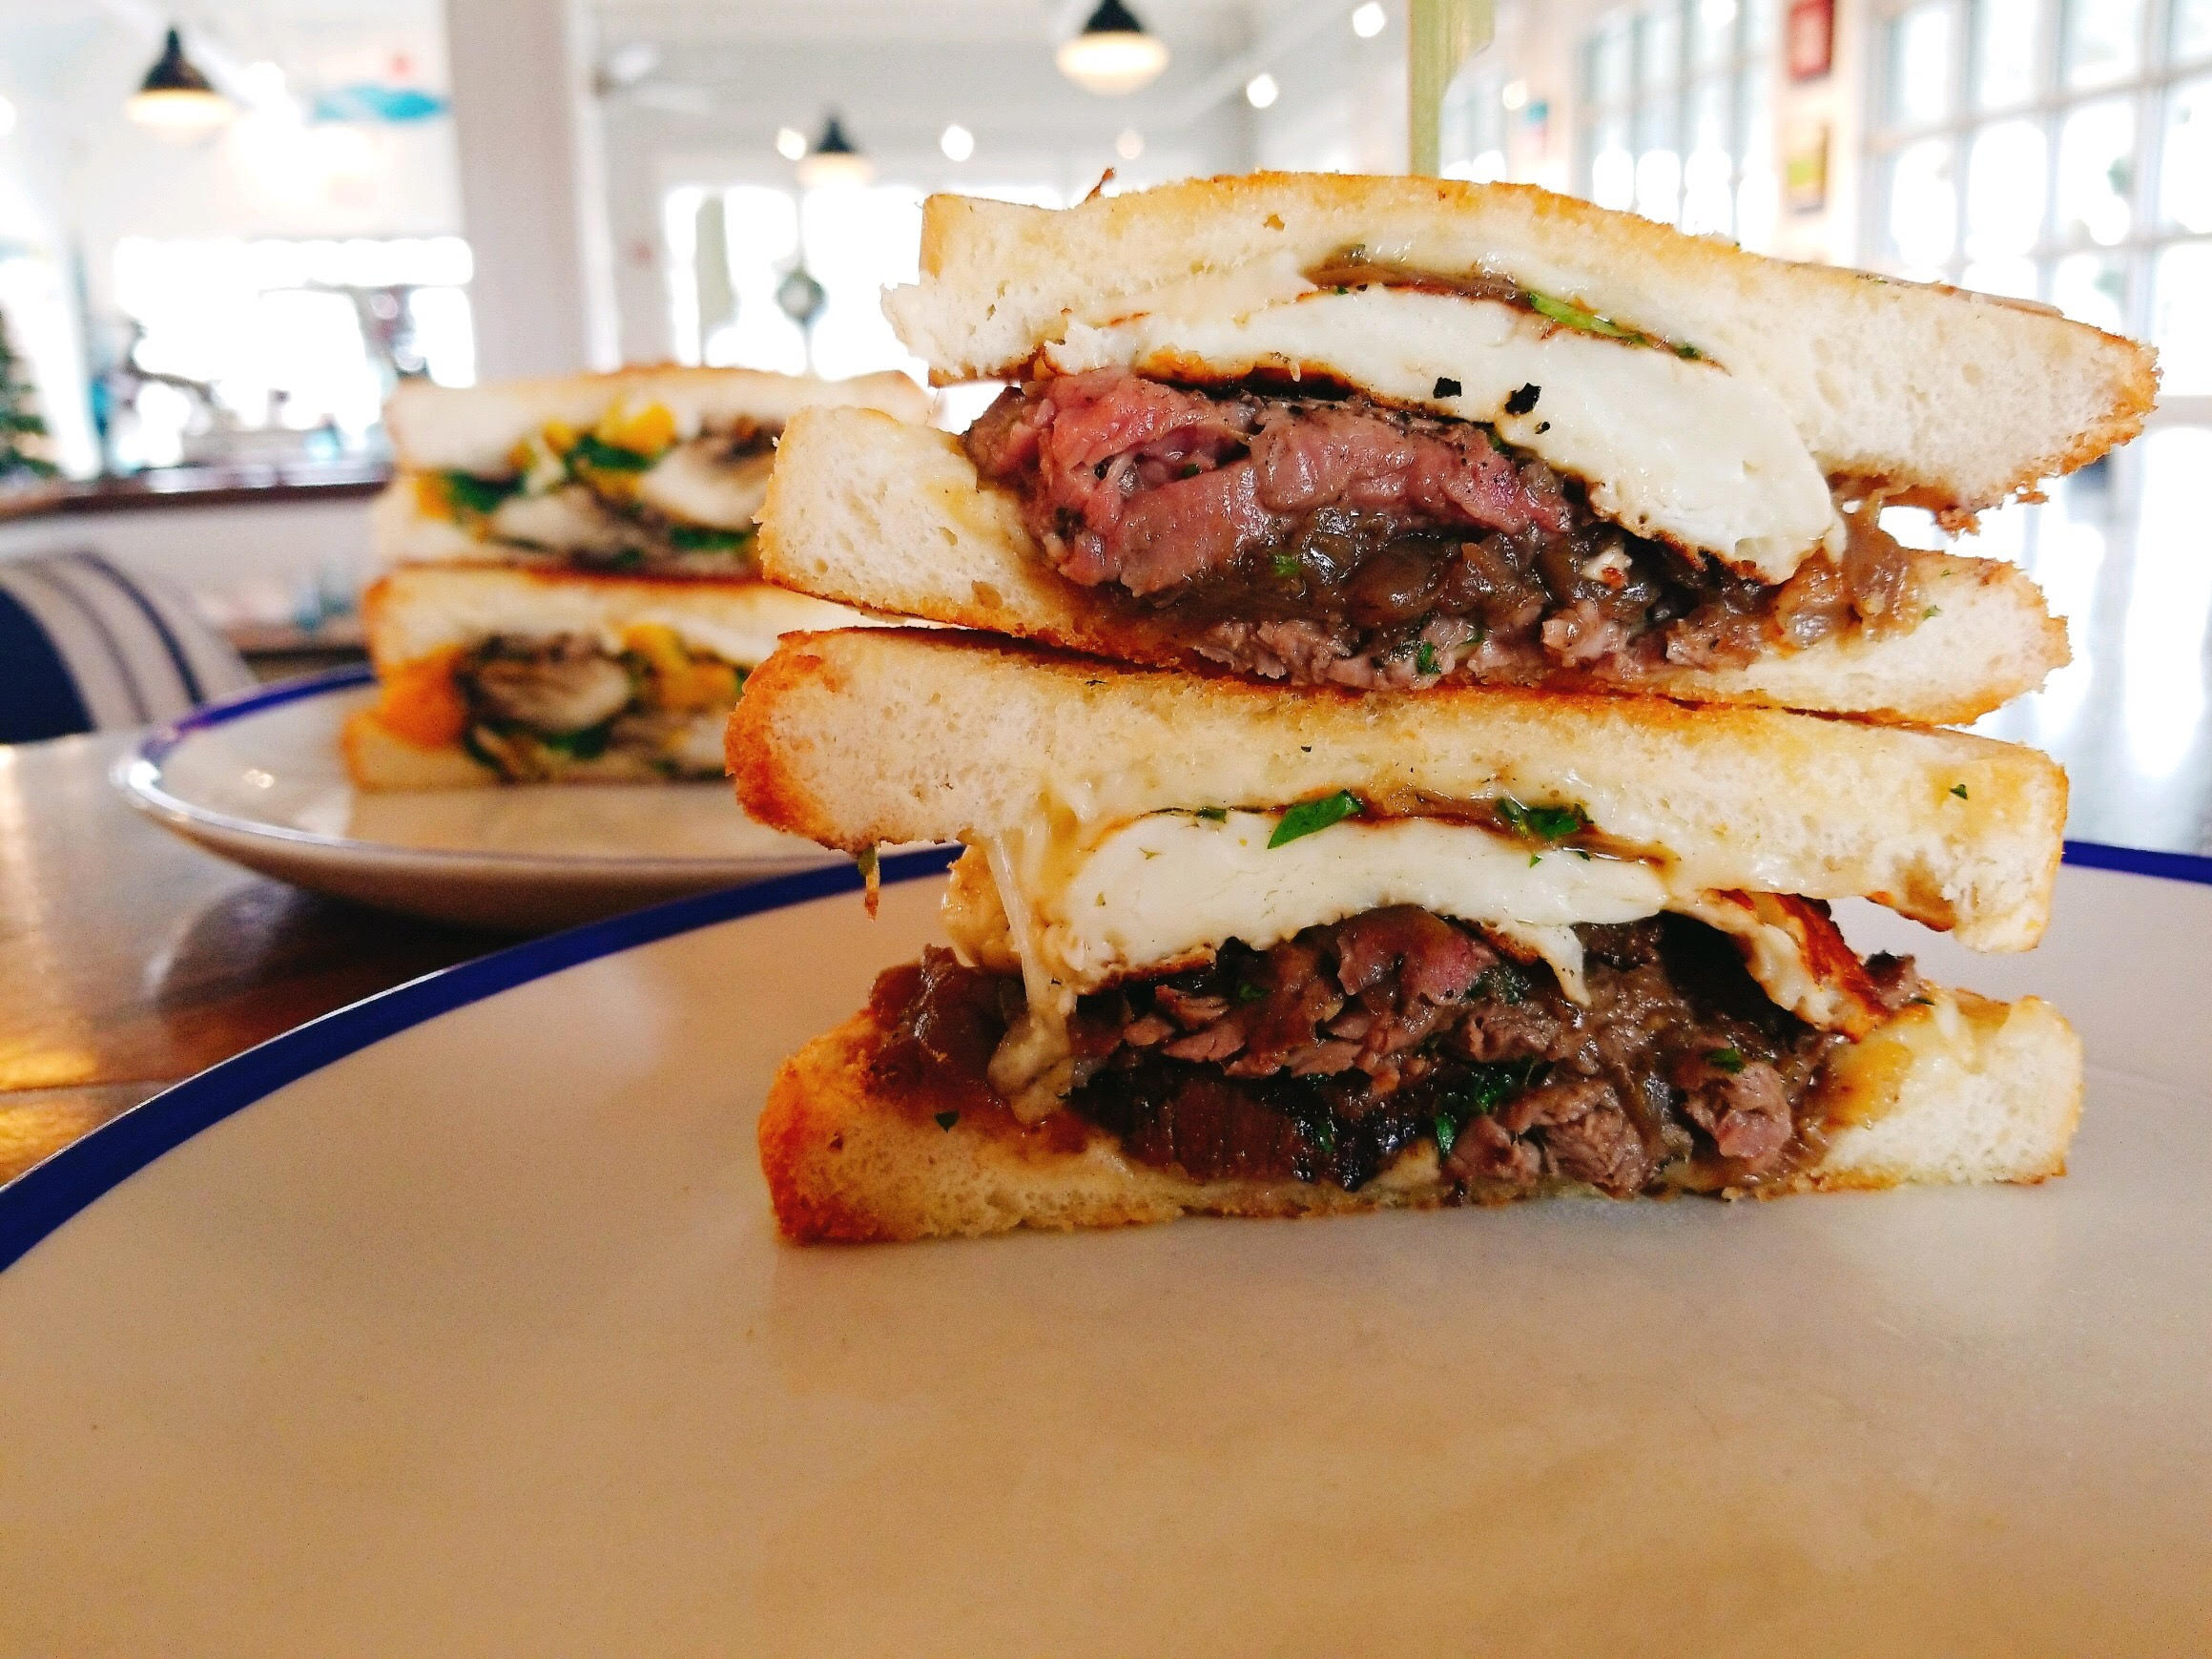 As part of SoDel Concepts' Grilled Cheese Month, Bluecoast Seafood Grill + Raw Bar in Rehoboth Beach has added such upscale ingredients as beef tenderloin and roasted winter veggies to the classic sandwich.